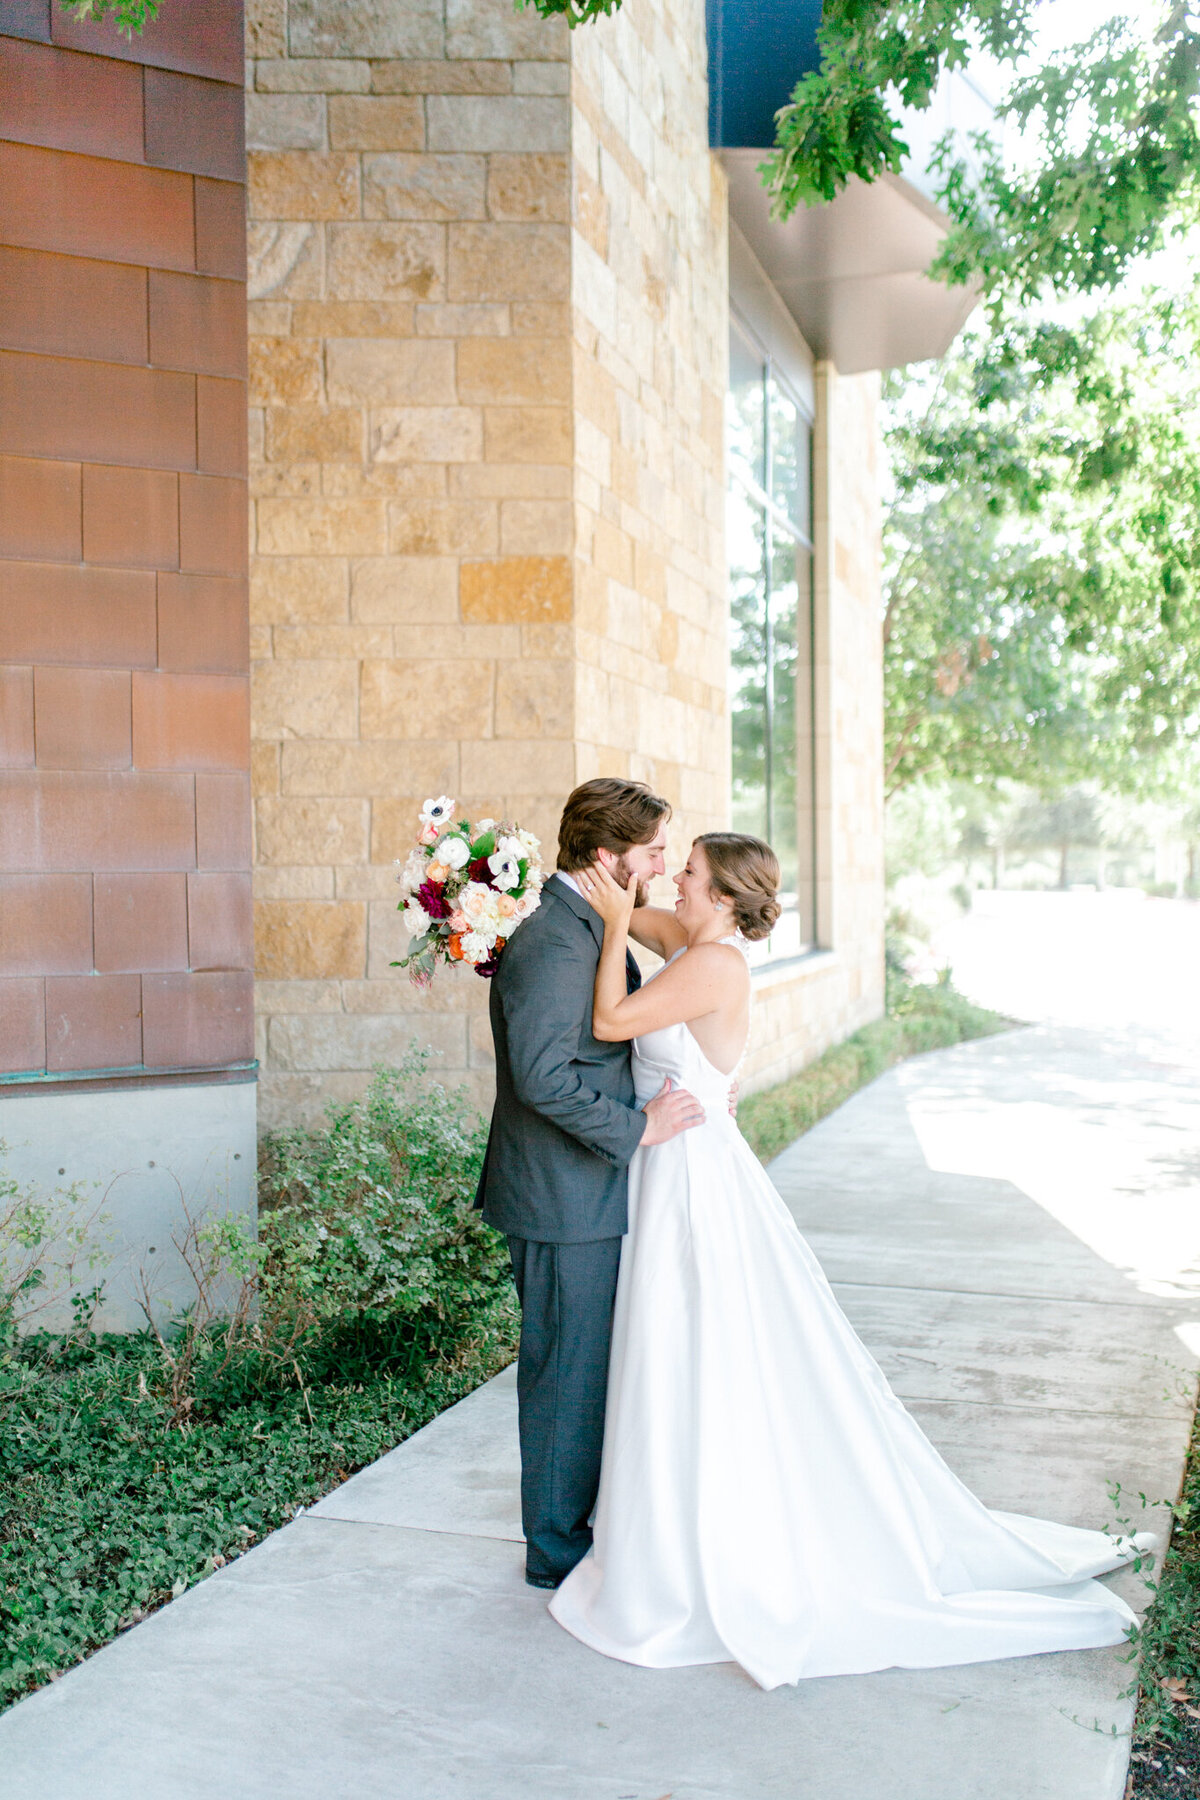 Kaylee & Michael's Wedding at Watermark Community Church | Dallas Wedding Photographer | Sami Kathryn Photography-15